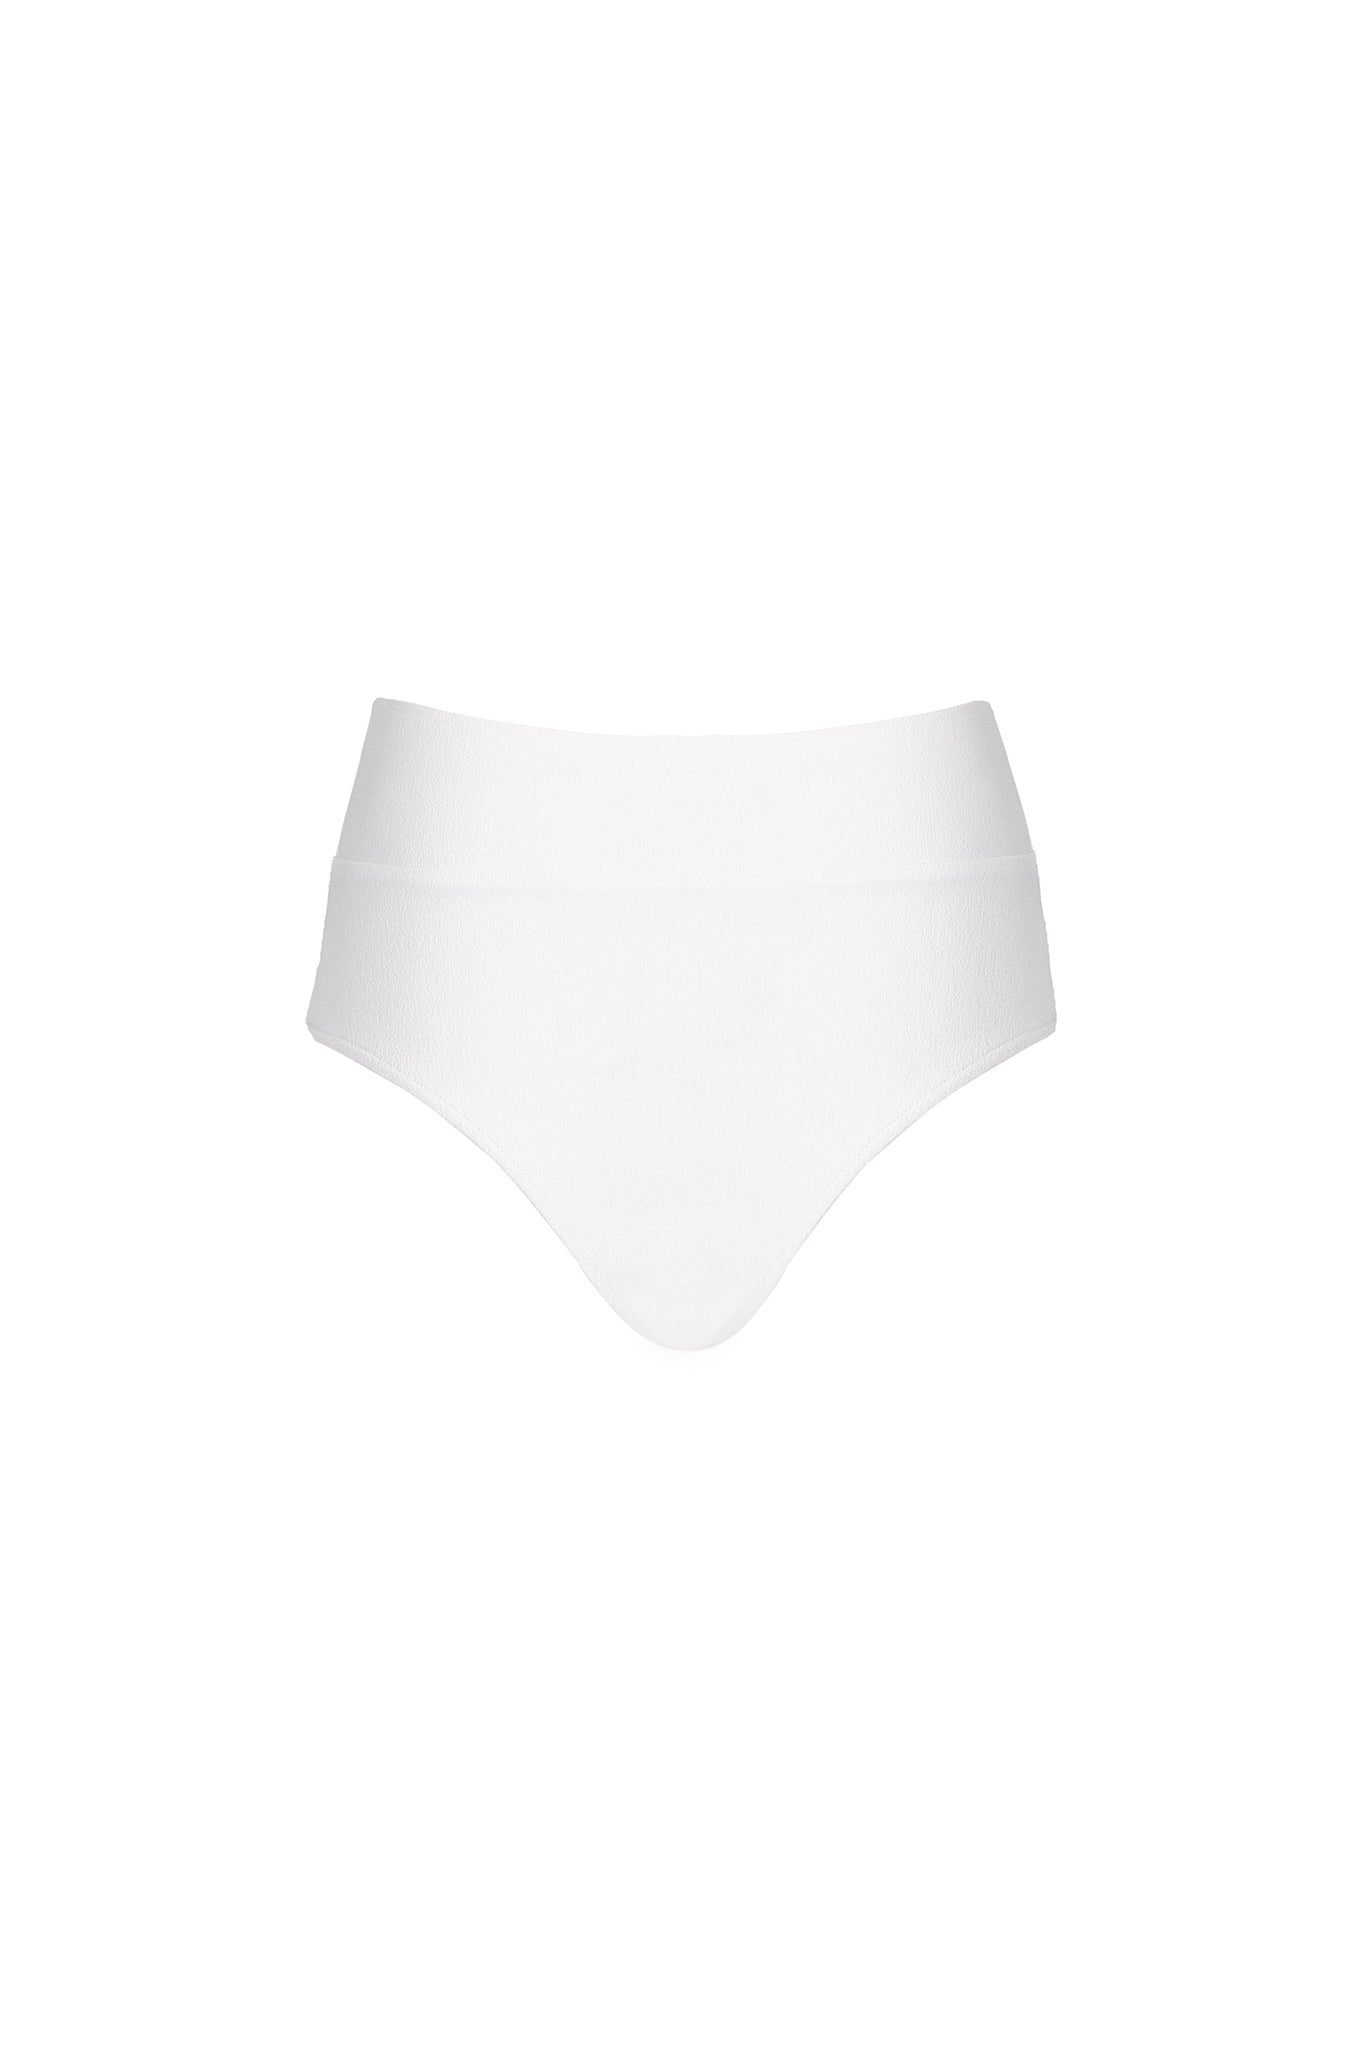 Henley Bottom - Cream Crepe